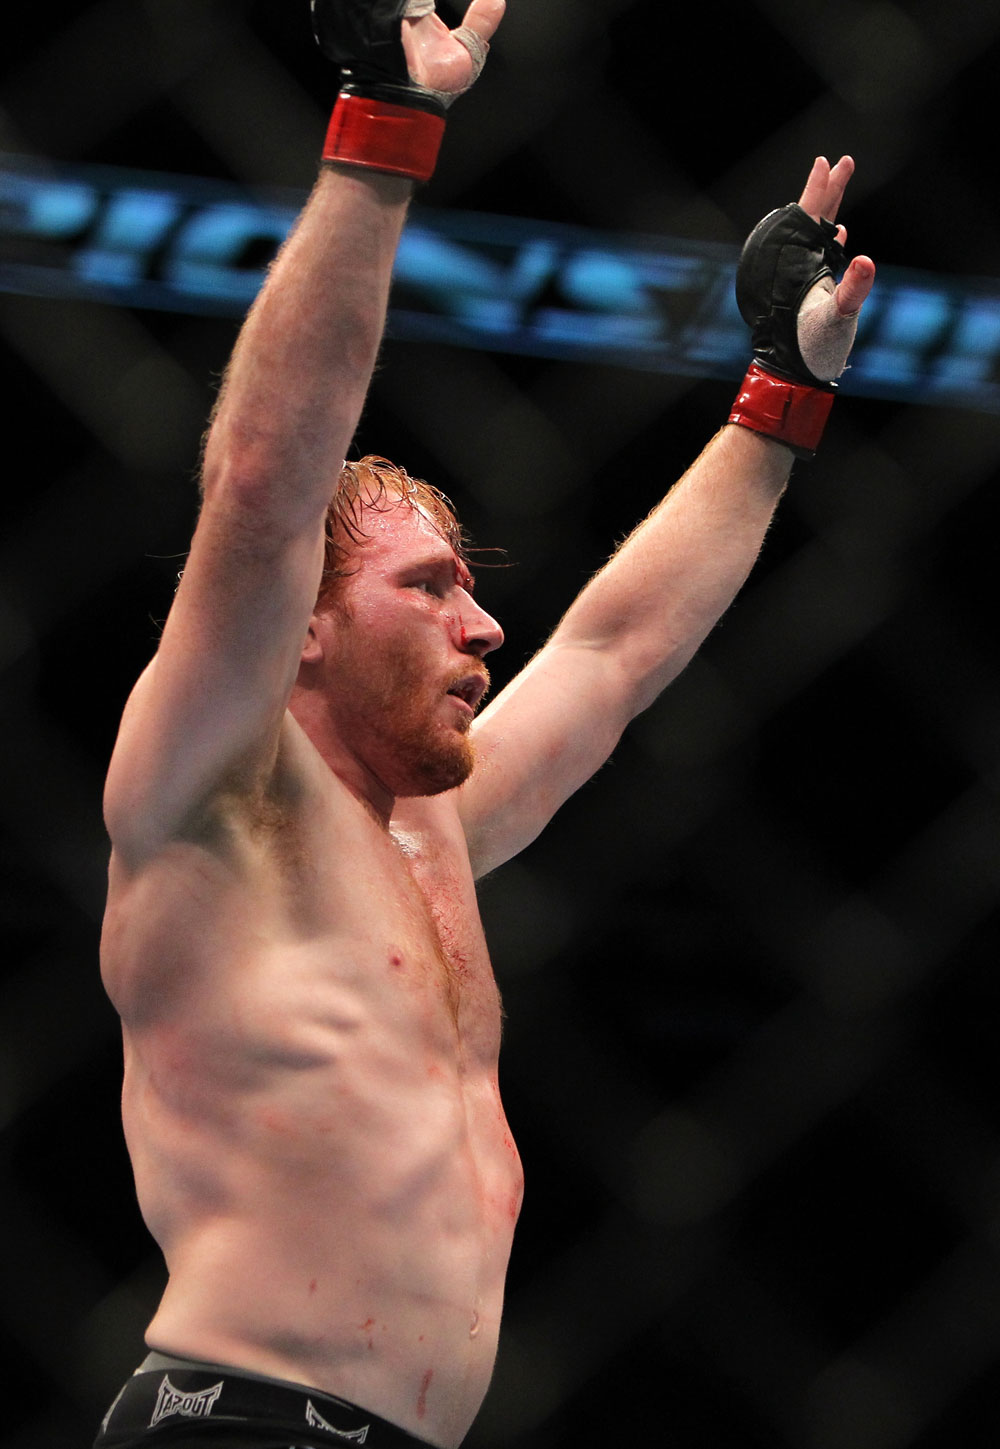 TORONTO, ON - DECEMBER 10:  Mark Bocek reacts after his hard-fought three-round battle against Nik Lentz during the UFC 140 event at Air Canada Centre on December 10, 2011 in Toronto, Ontario, Canada.  (Photo by Josh Hedges/Zuffa LLC/Zuffa LLC via Getty Images)